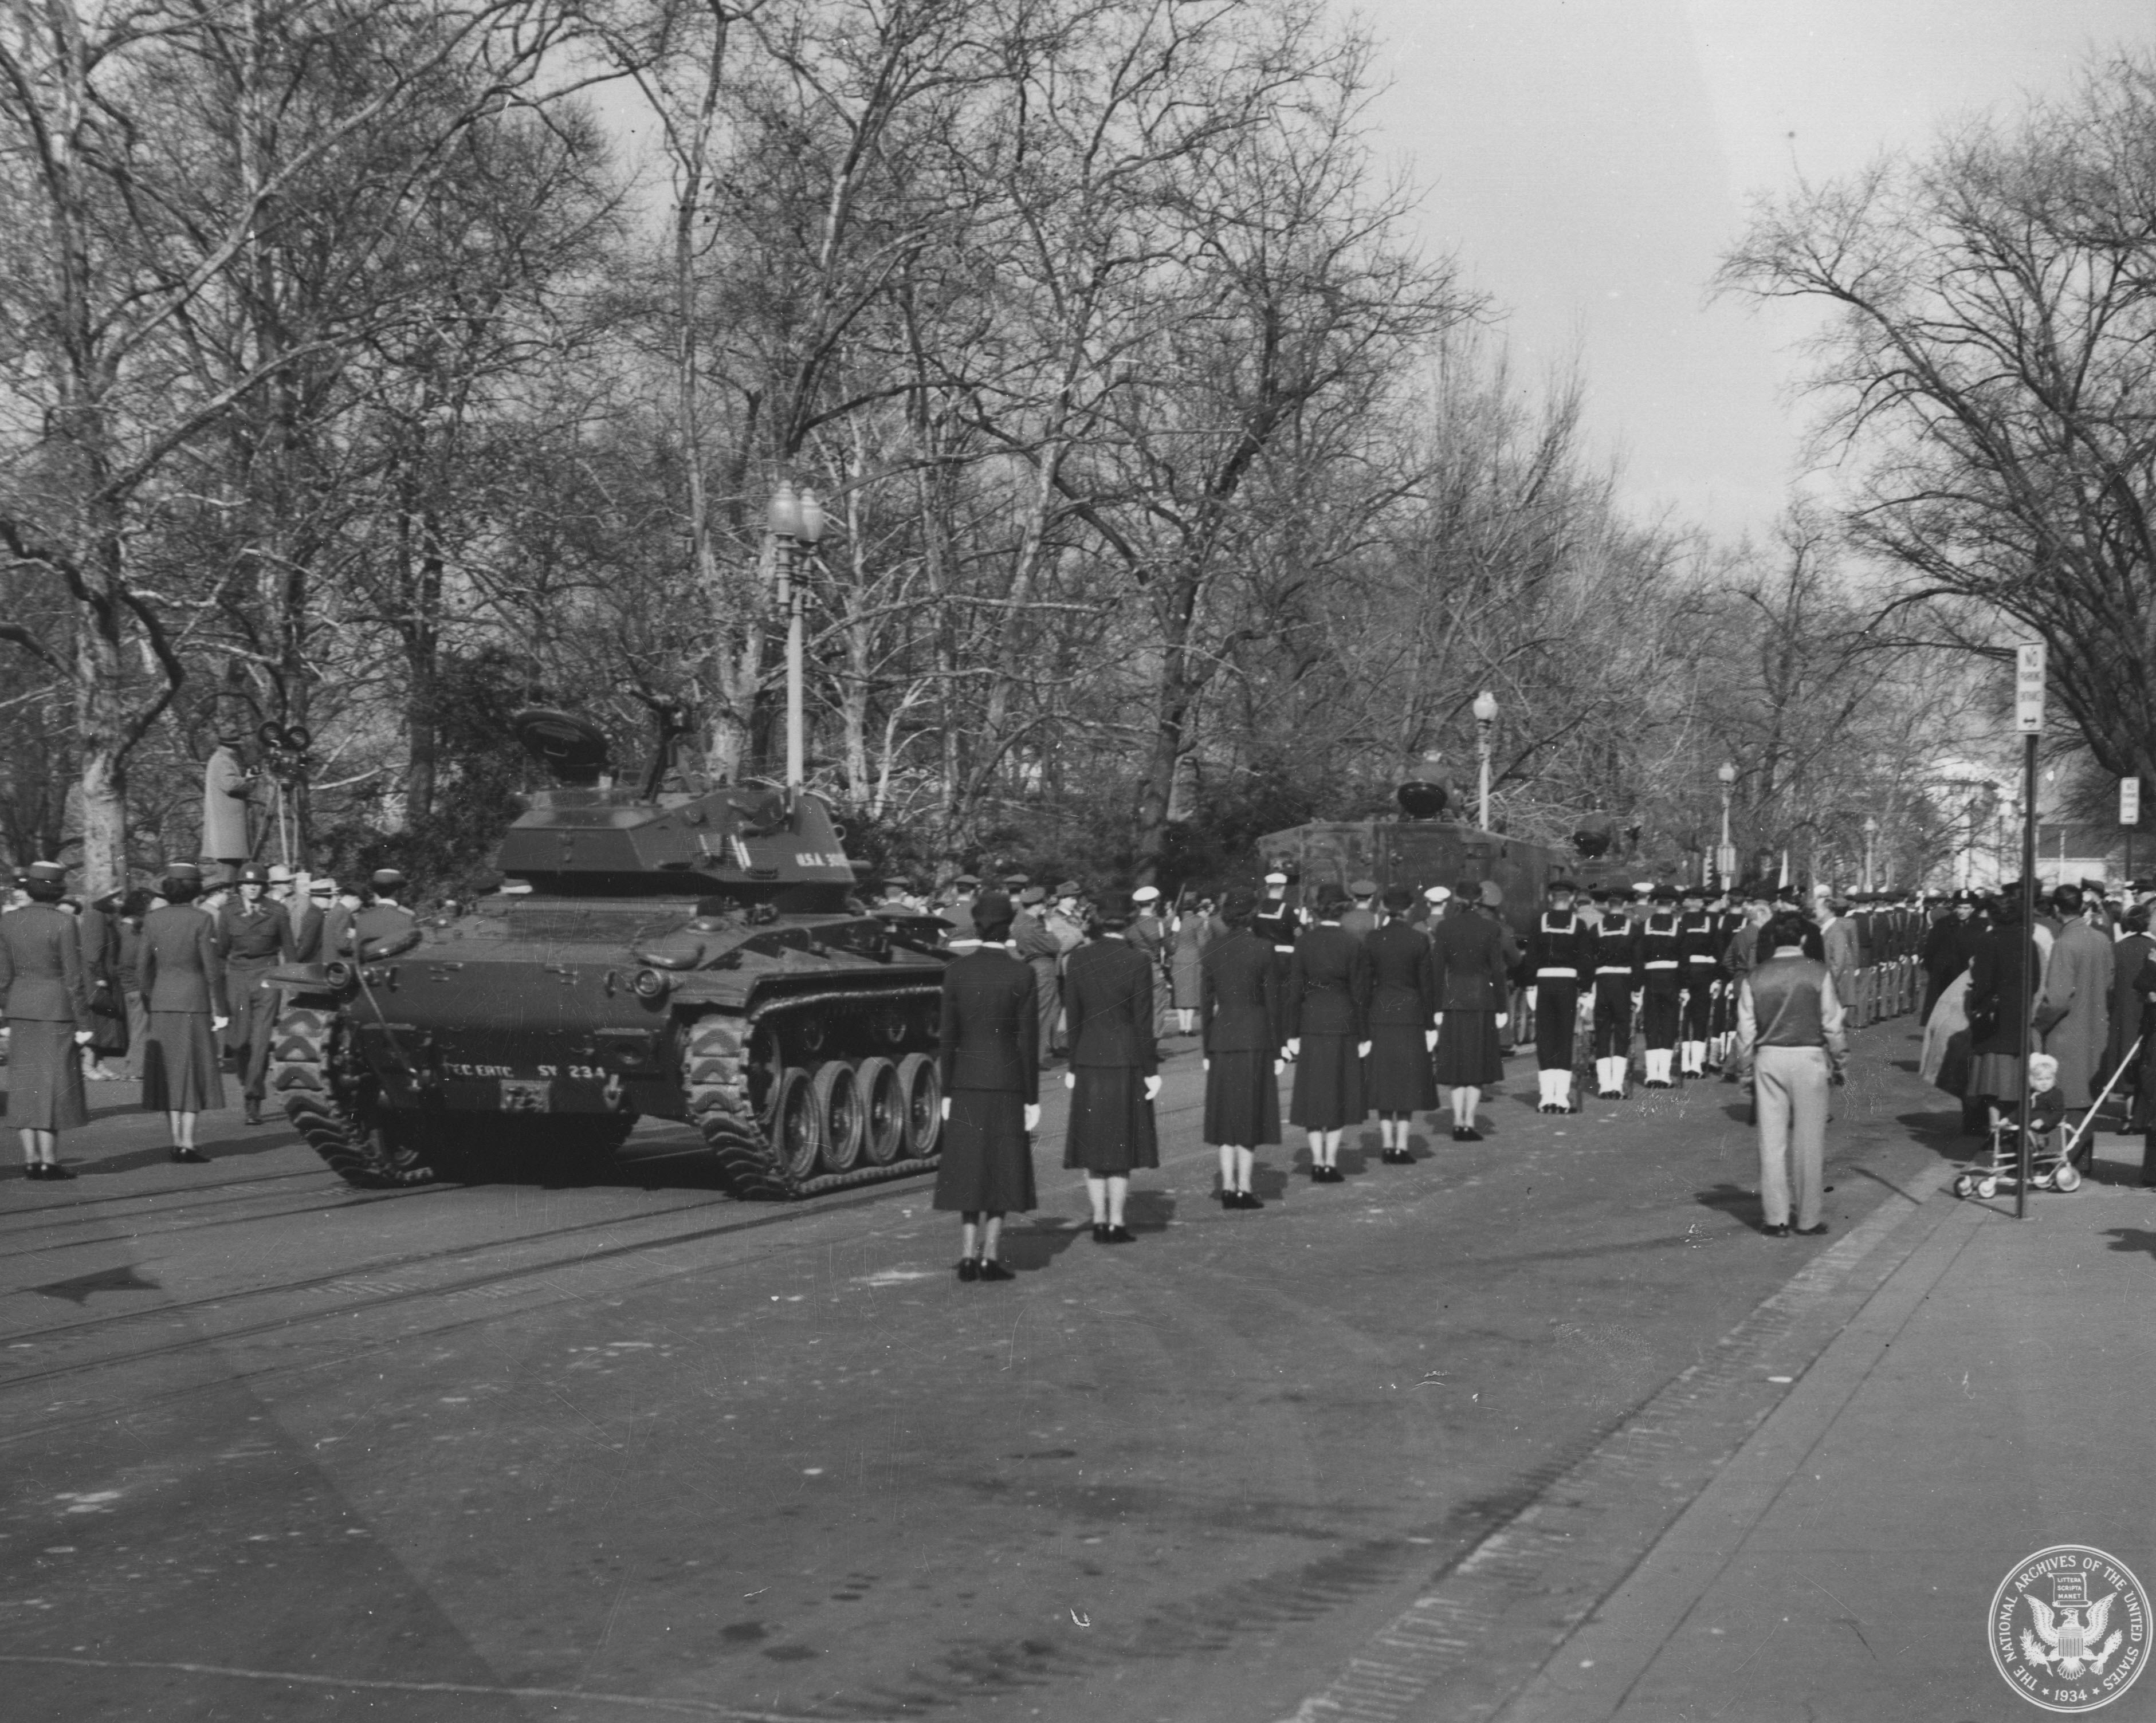 Procession Transferring documents to the National Archives, December 13, 1952. (Records of the National Archives)